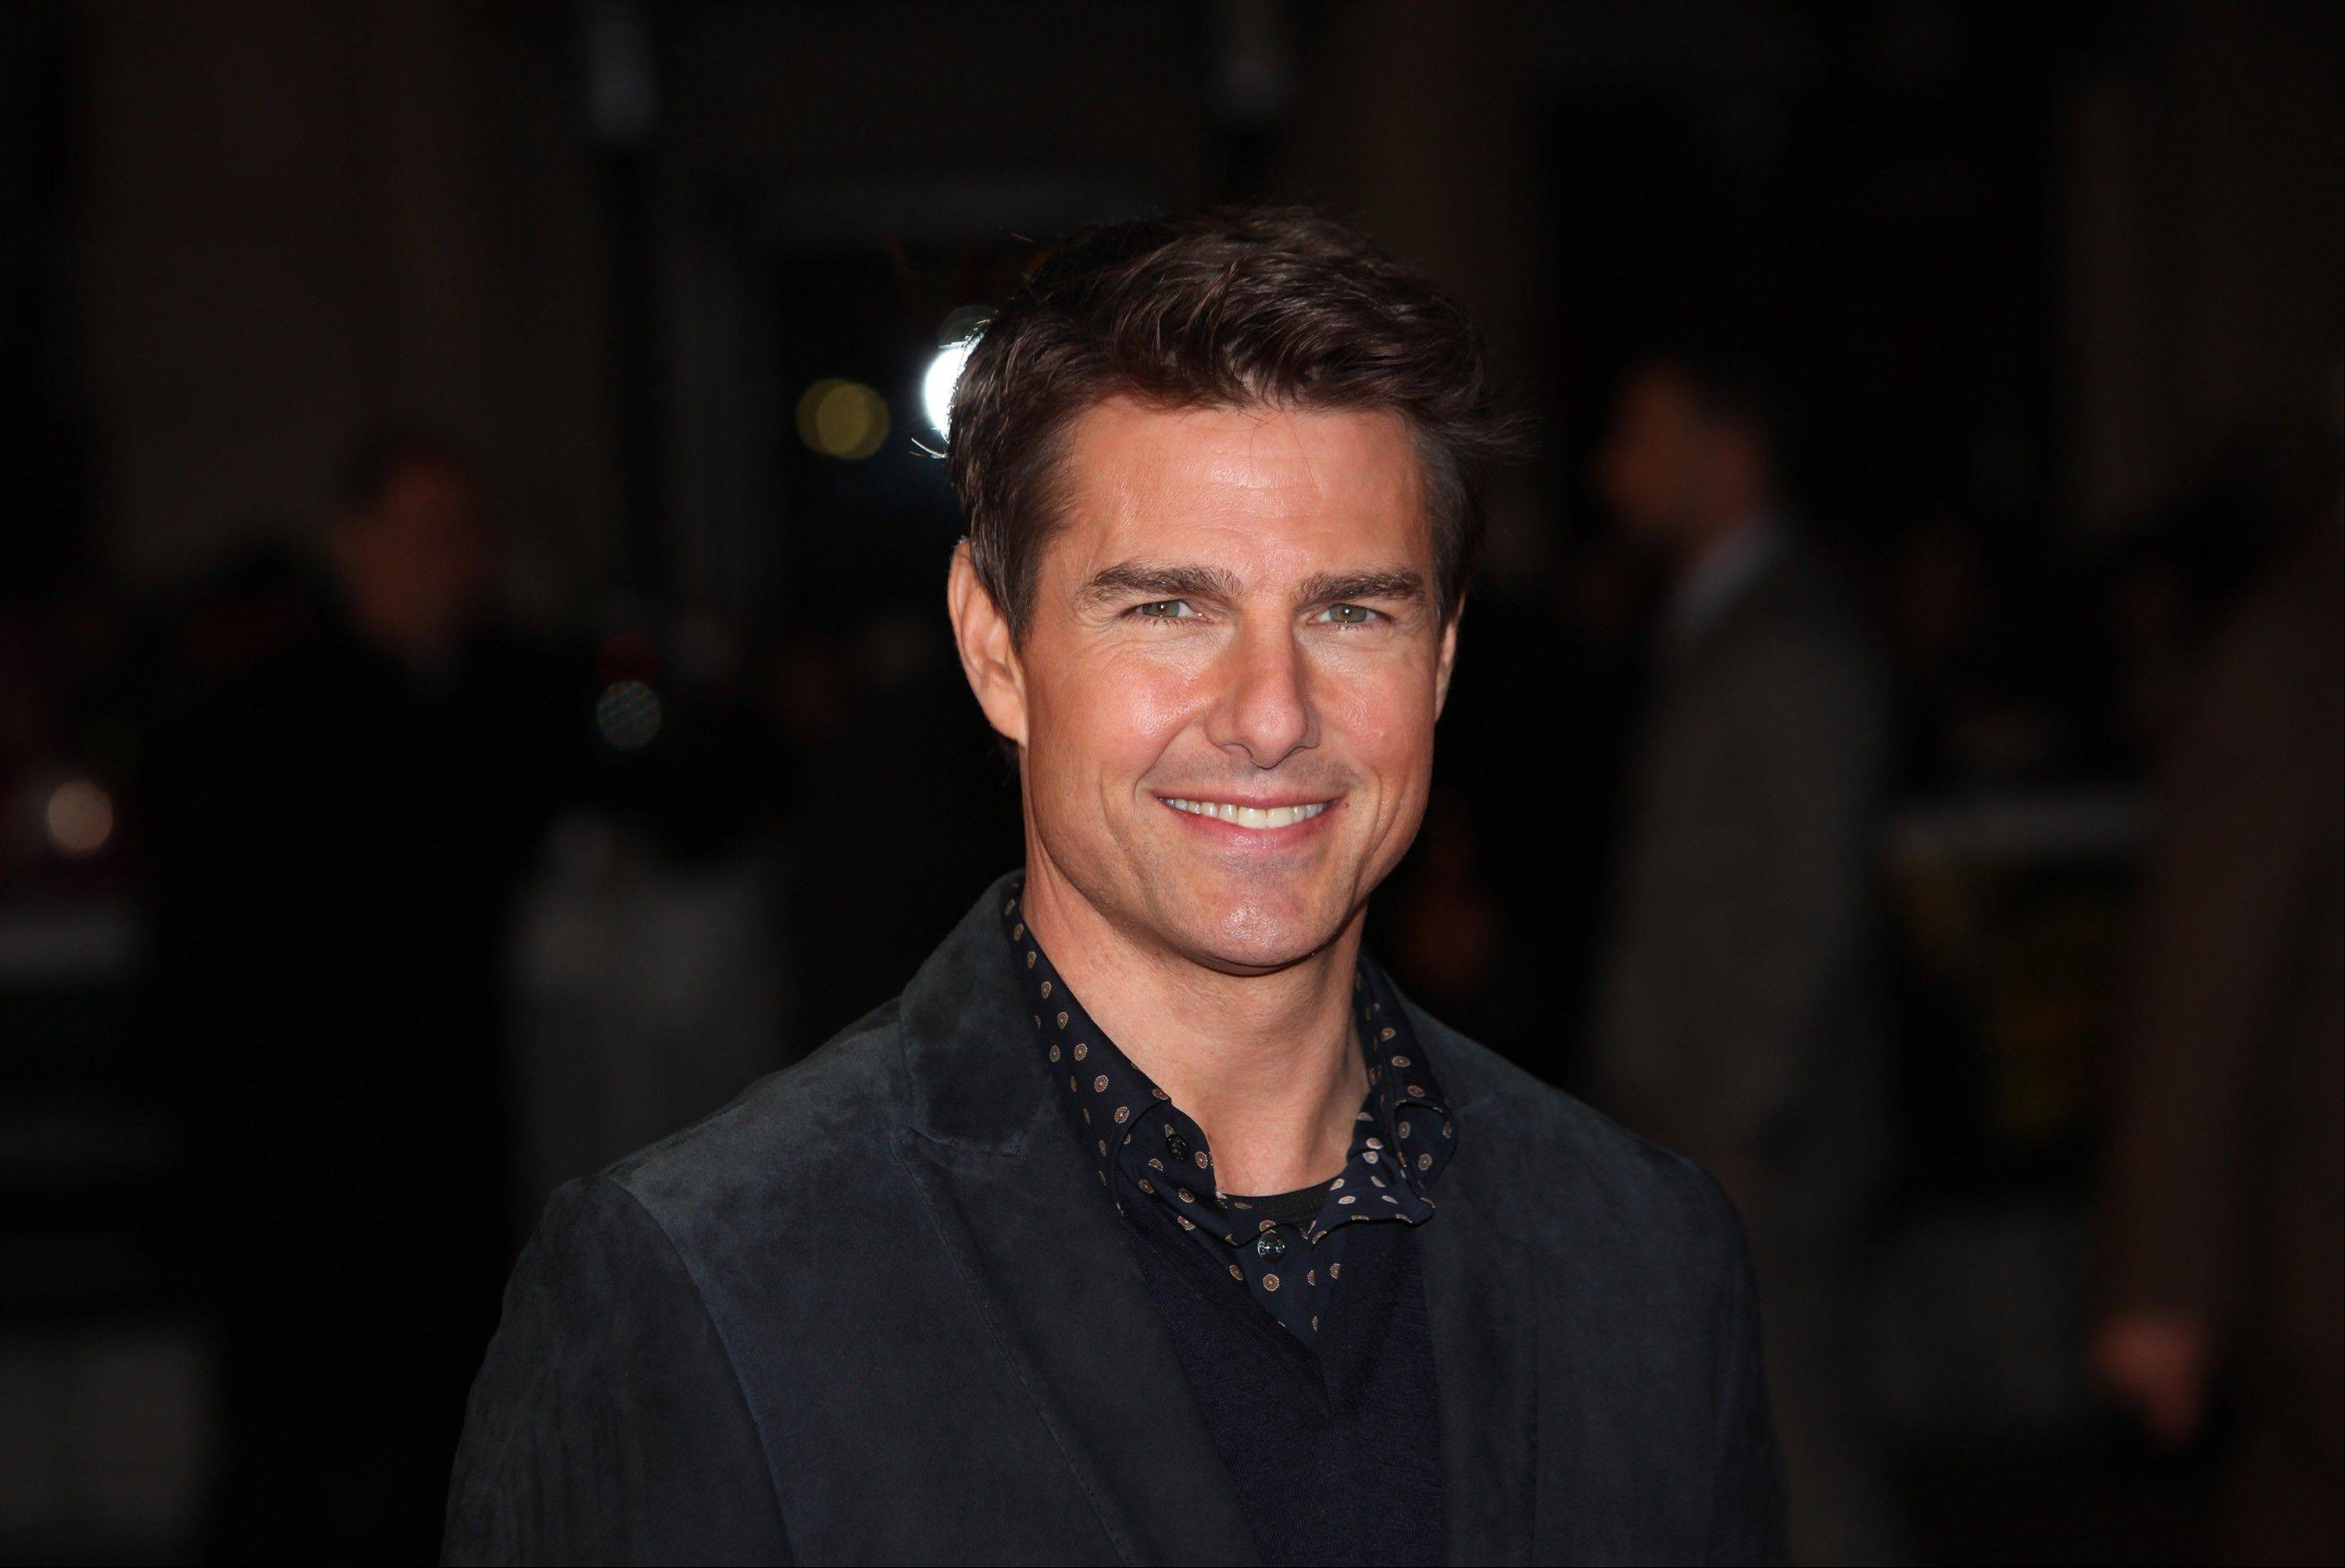 Tom Cruise was a surprise choice to play the main character Jack Reacher in the upcoming film.